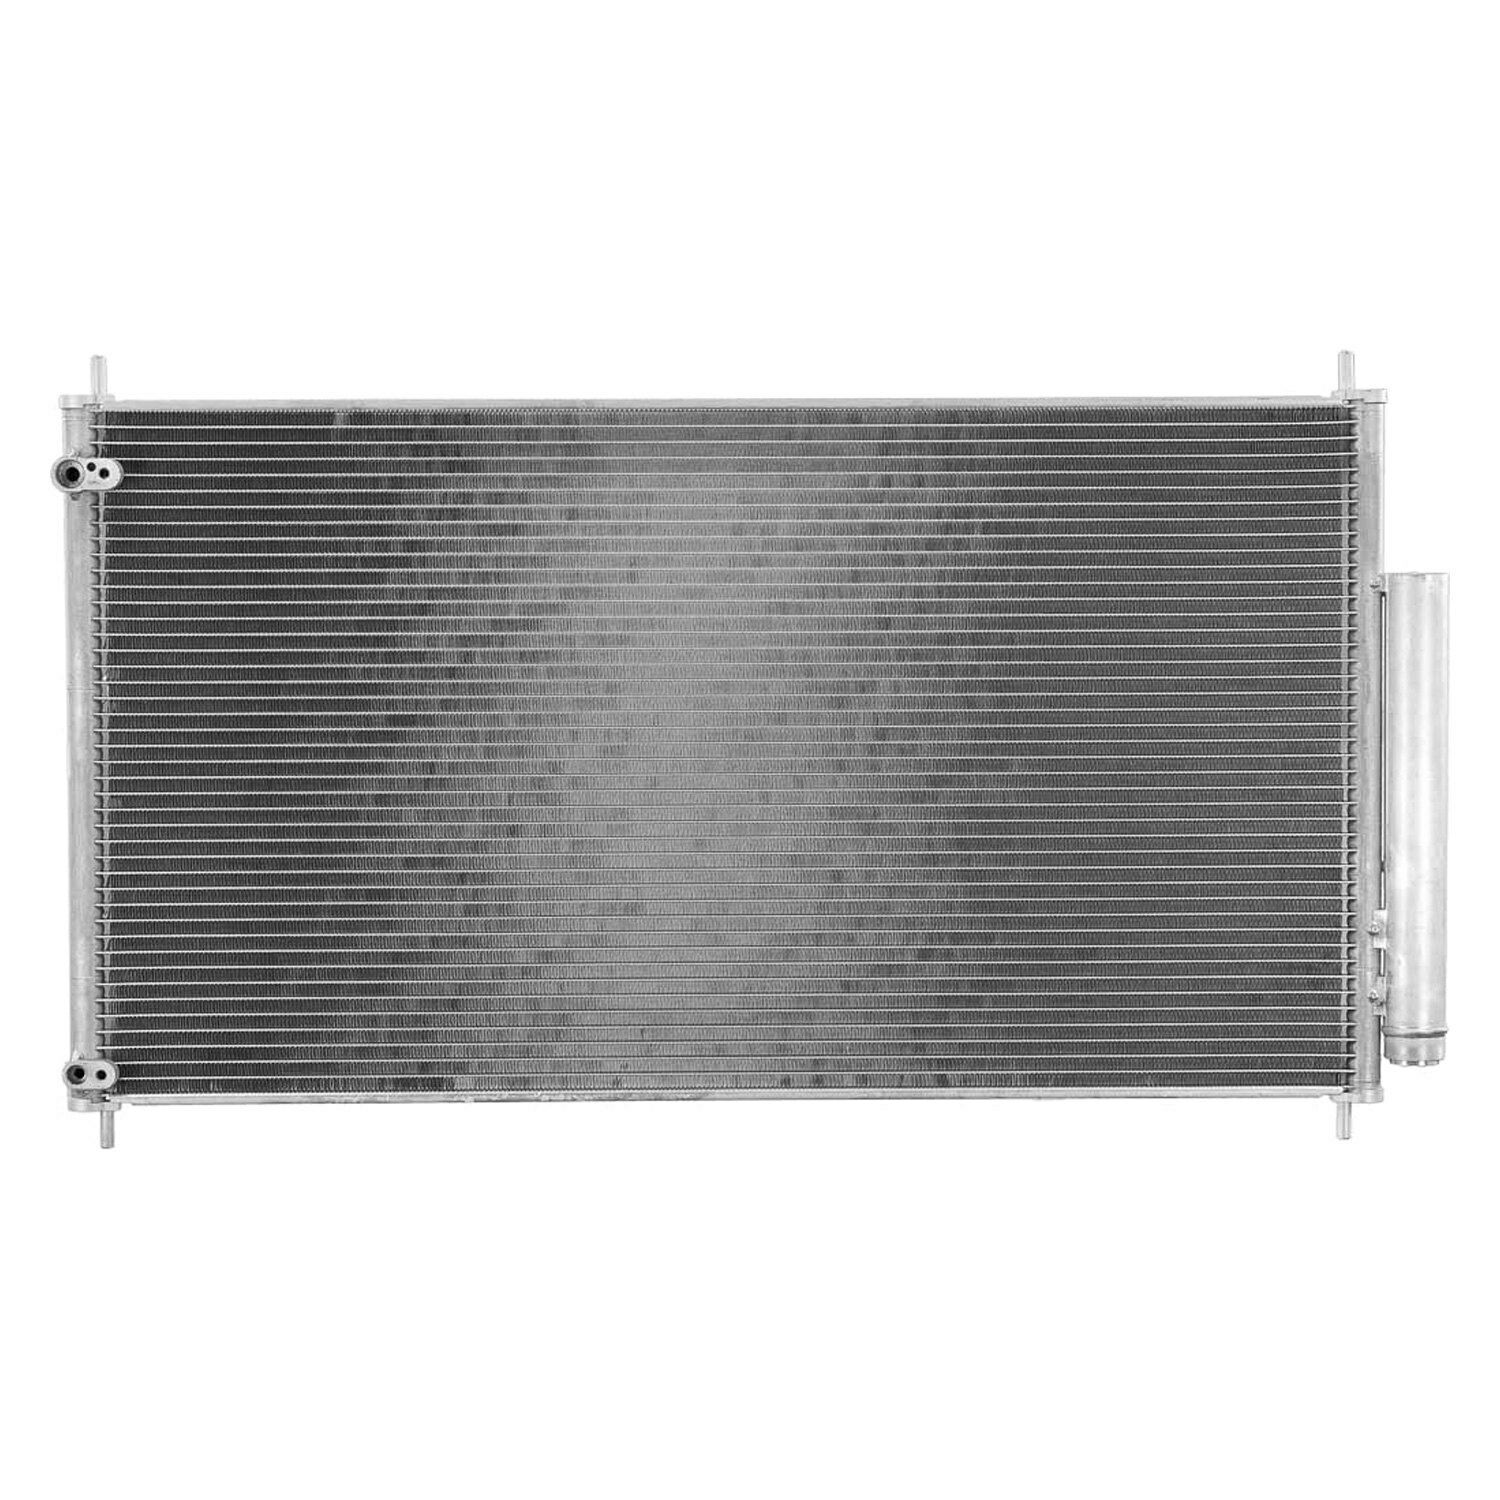 For Acura RLX 2014-2015 Replace A/C Condenser